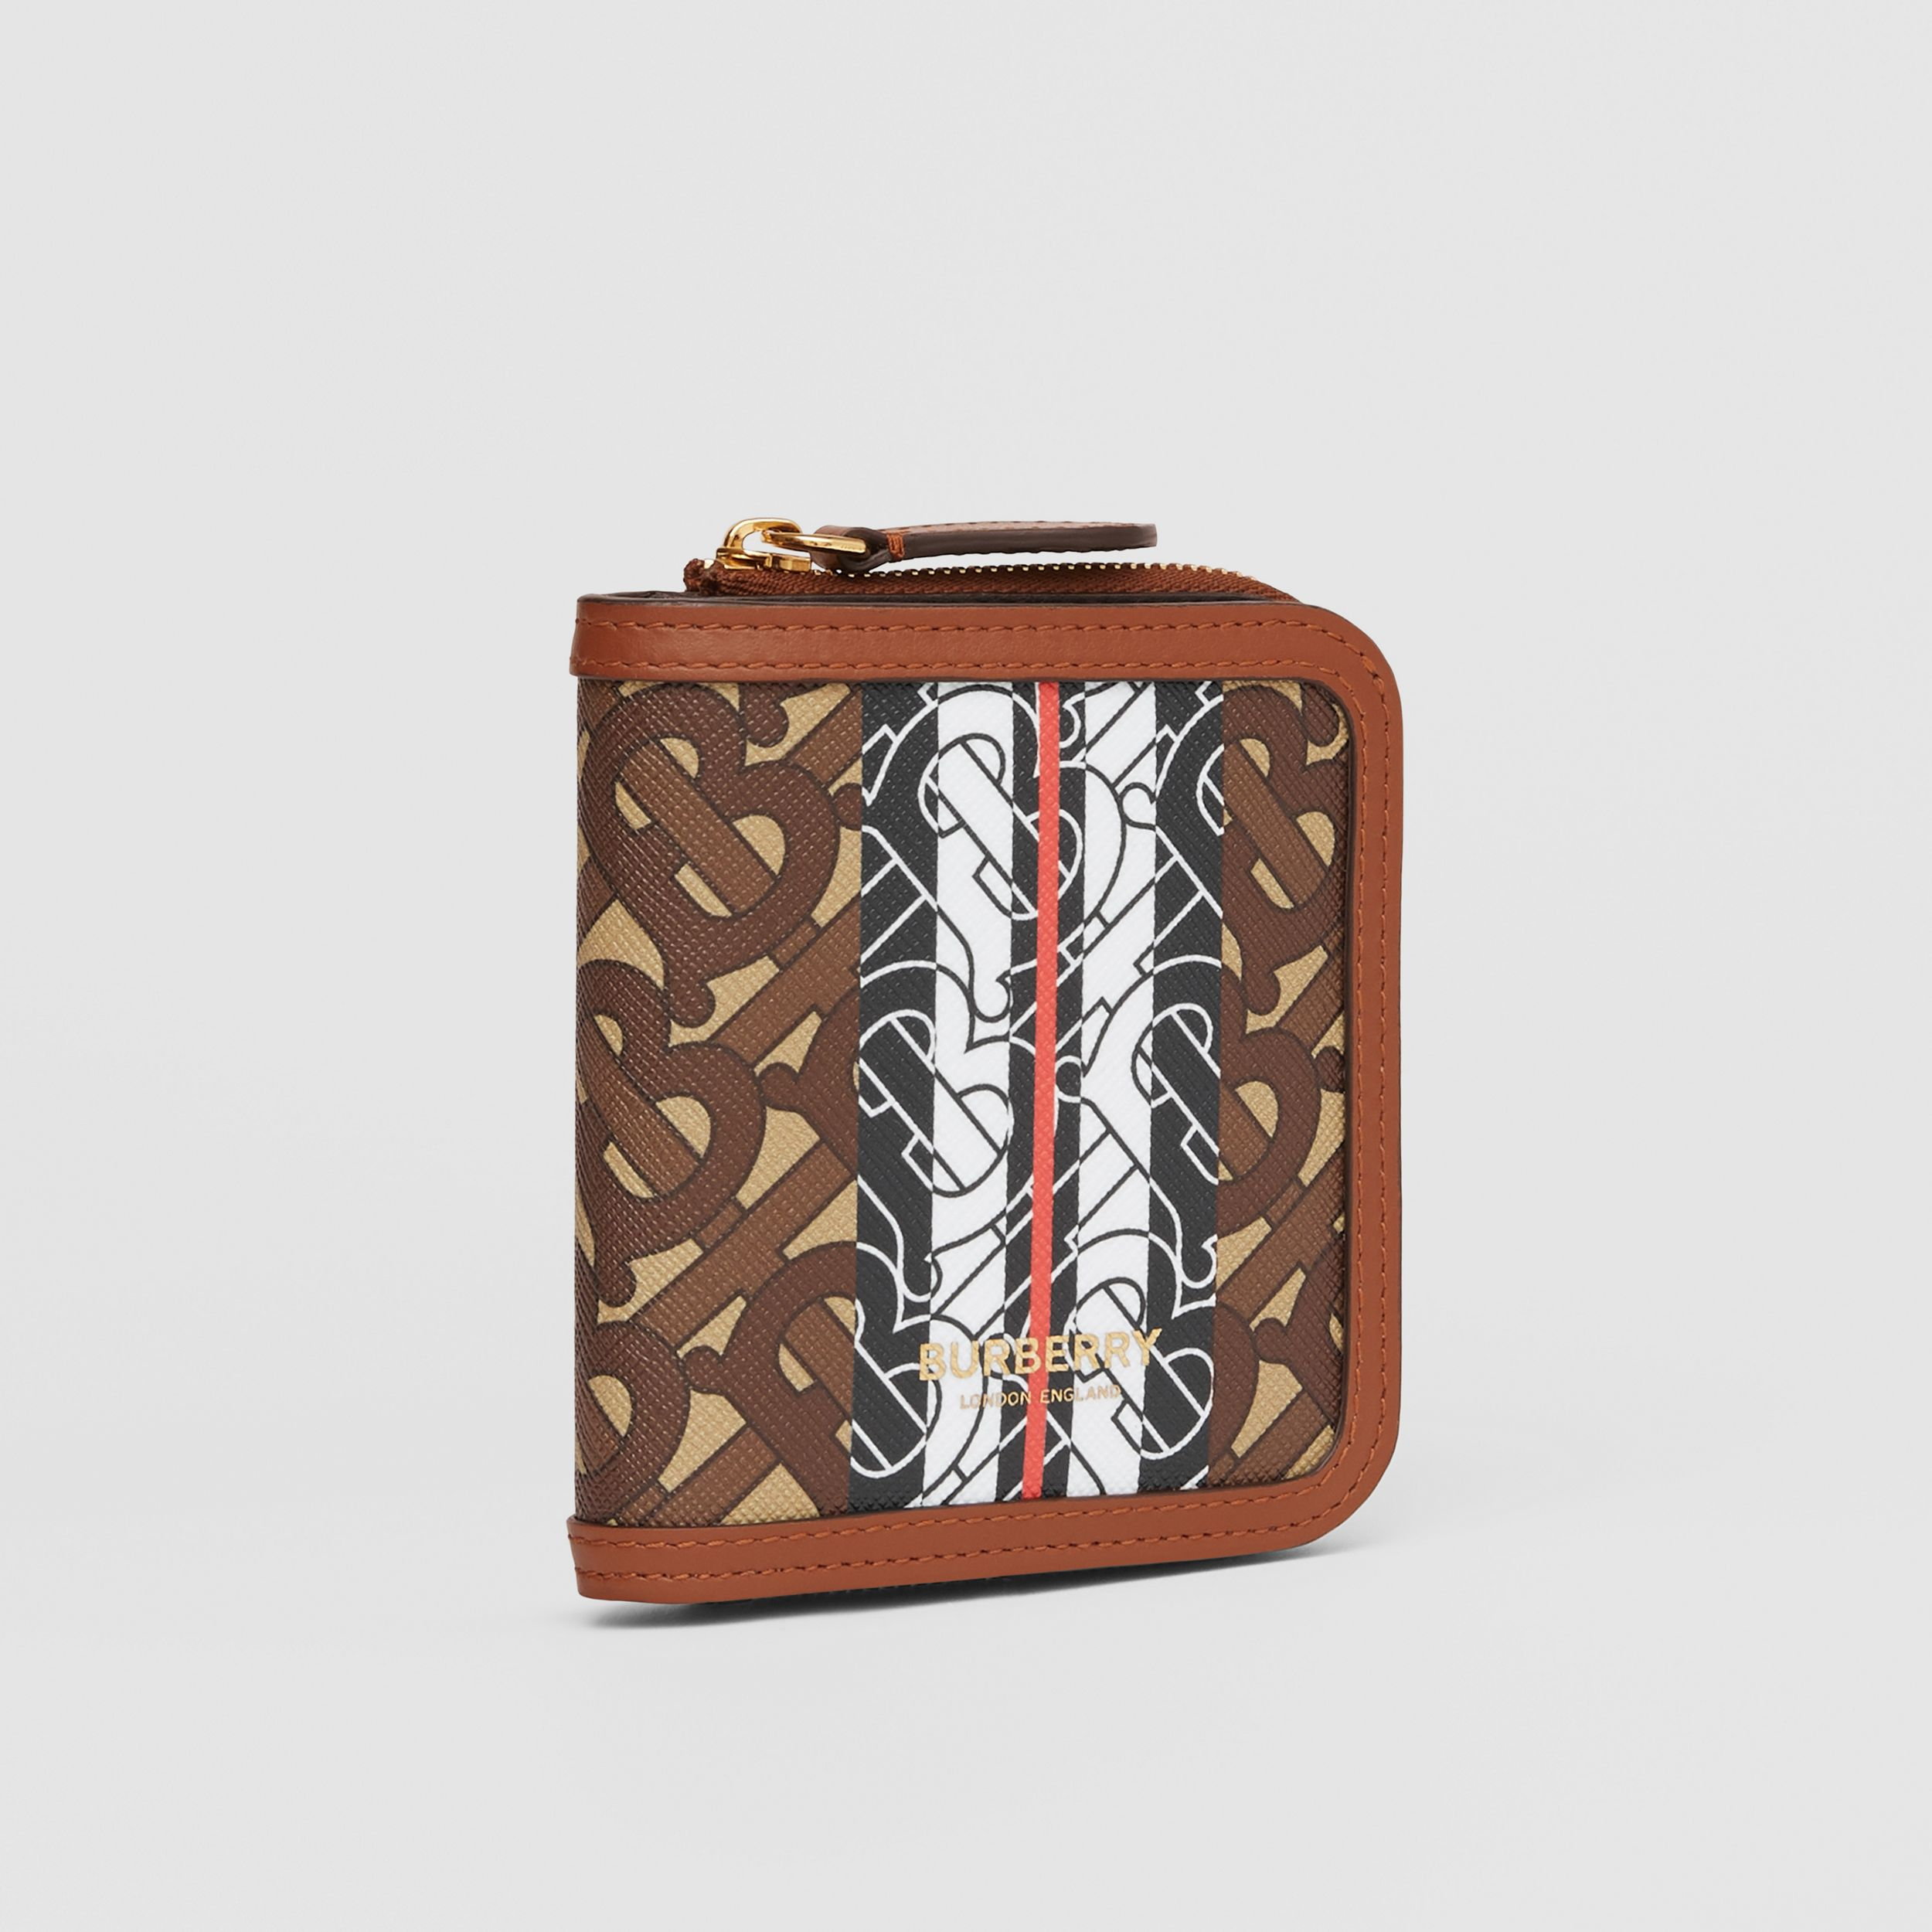 Monogram Stripe E-canvas and Leather Folding Wallet in Bridle Brown - Women | Burberry - 4